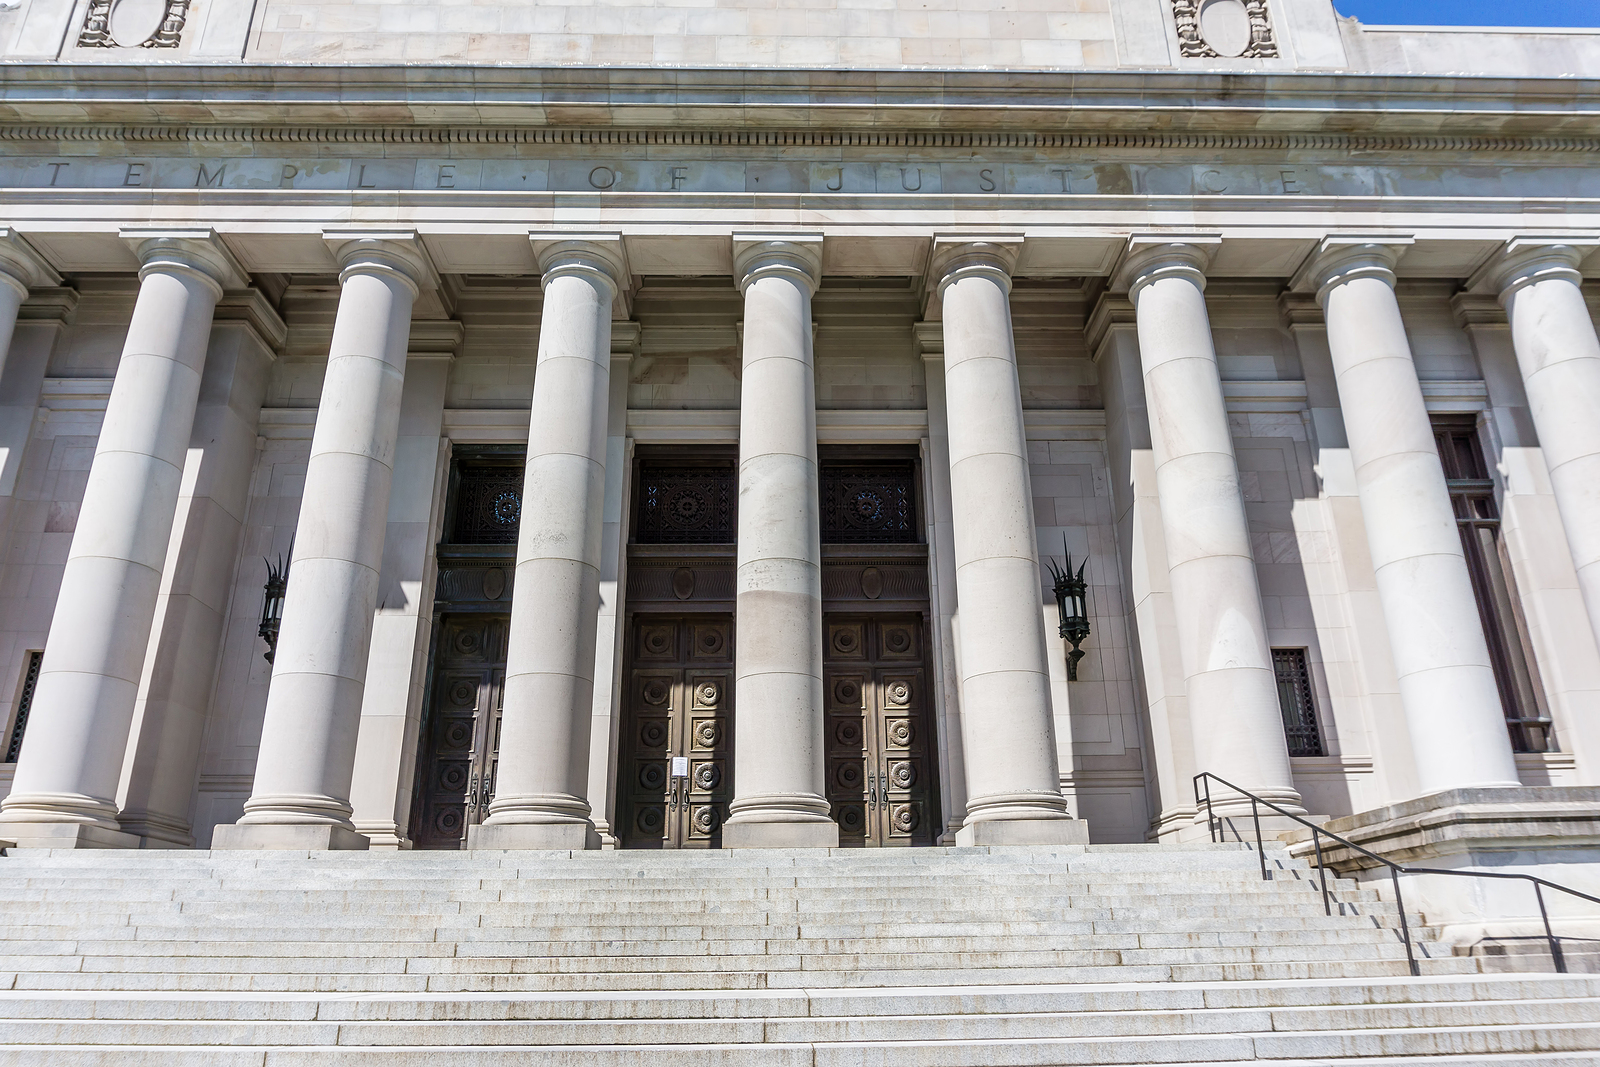 Appellate Law Front Of The Temple Of Justice Building At The Washington State